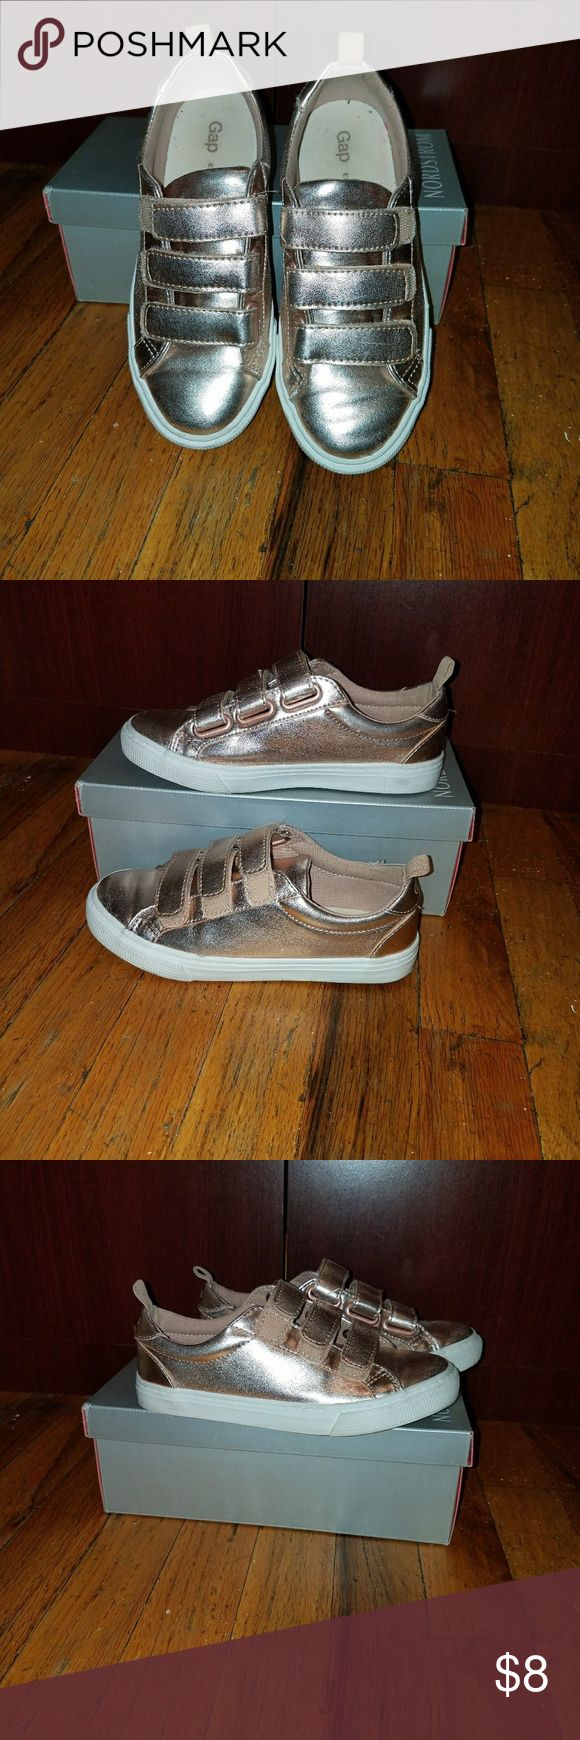 Girls sneakers Awesome Girls sneakers  rose gold velcro straps in great condition GAP Shoes Sneakers